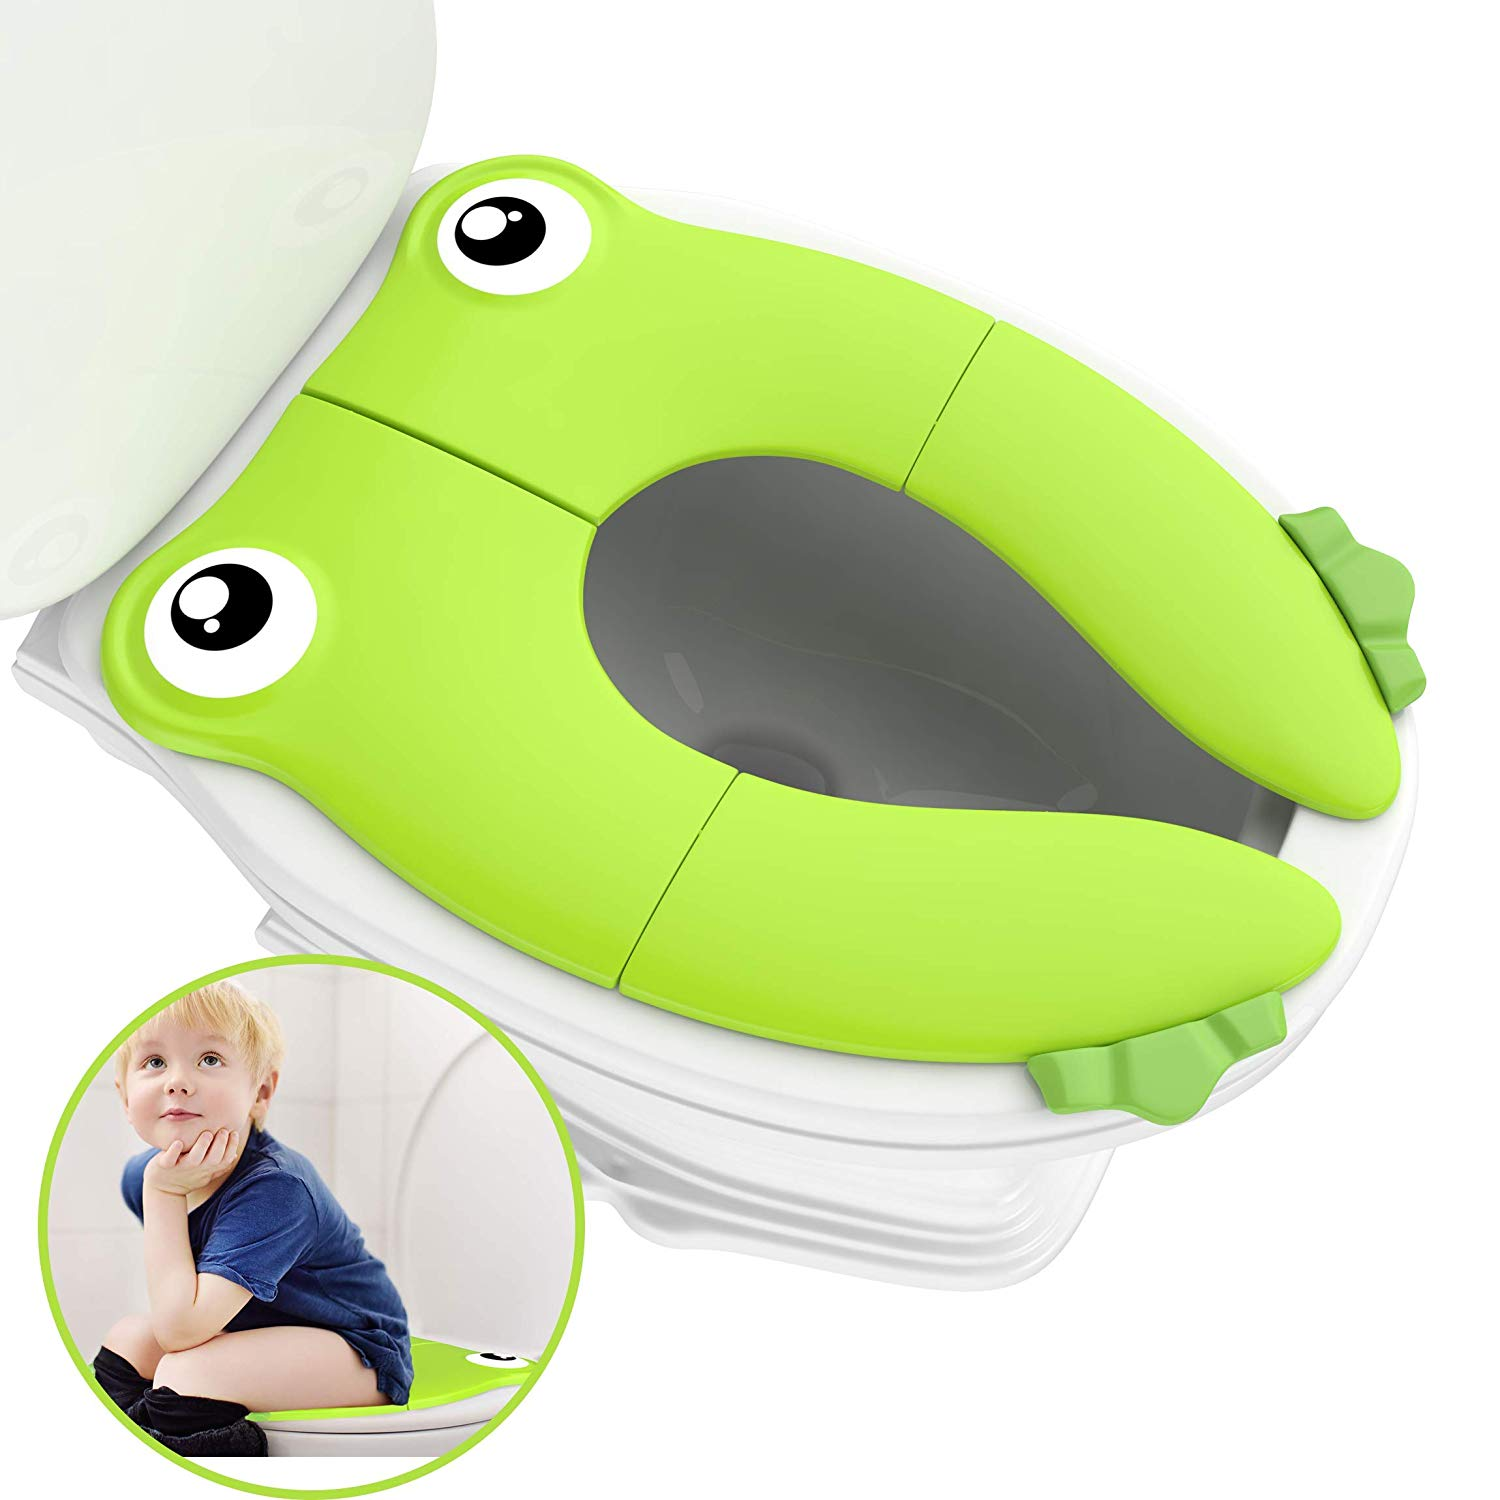 Travel Portable Folding Potty Training Toilet Seat Cover, Non Slip Silicone Pads, Suitable For Kids Baby Boys And Girls